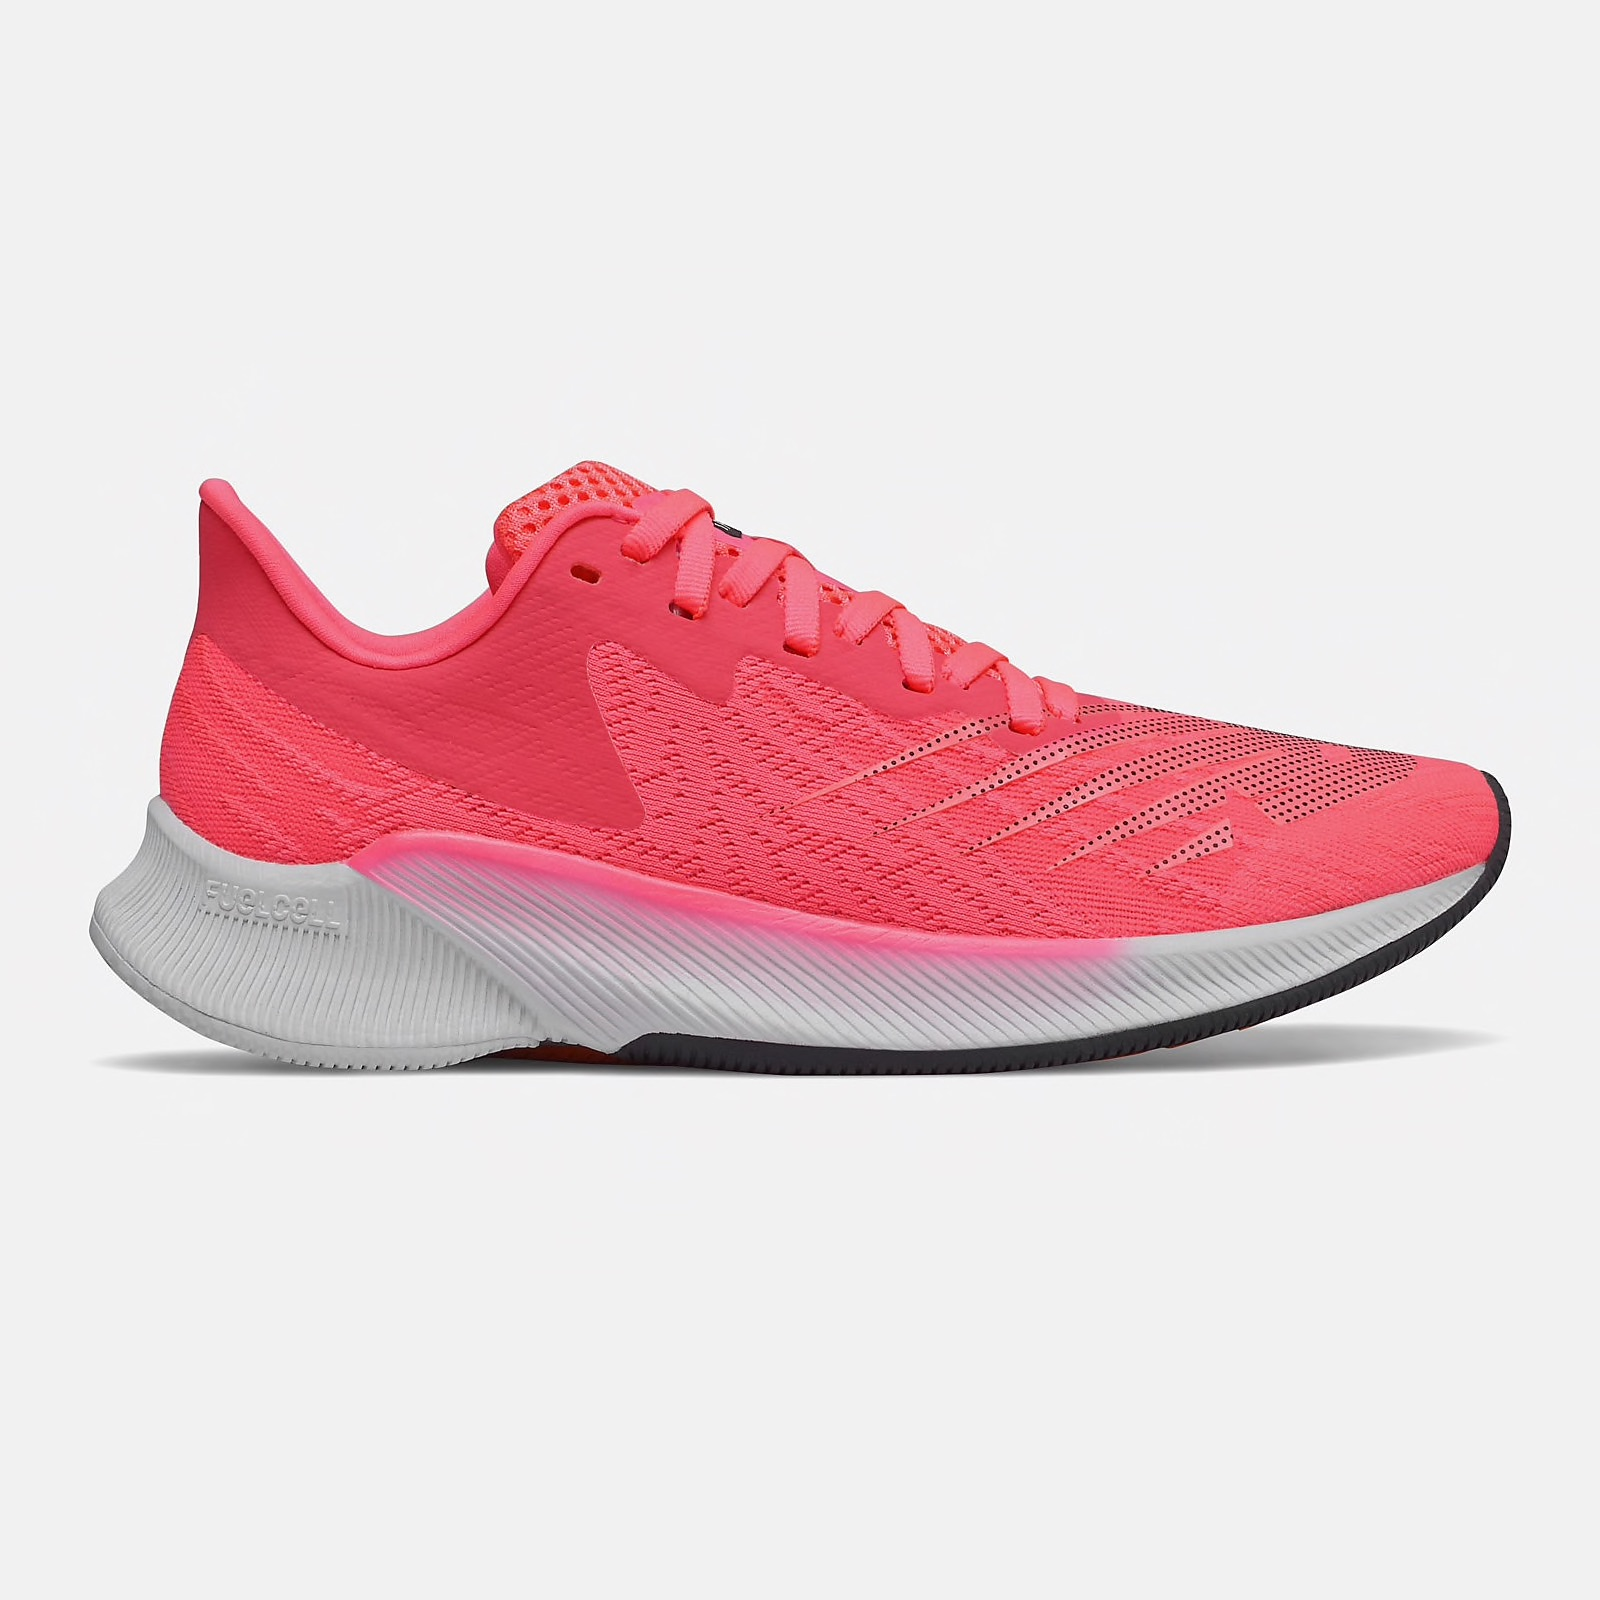 New Balance FuelCell Prism - Women